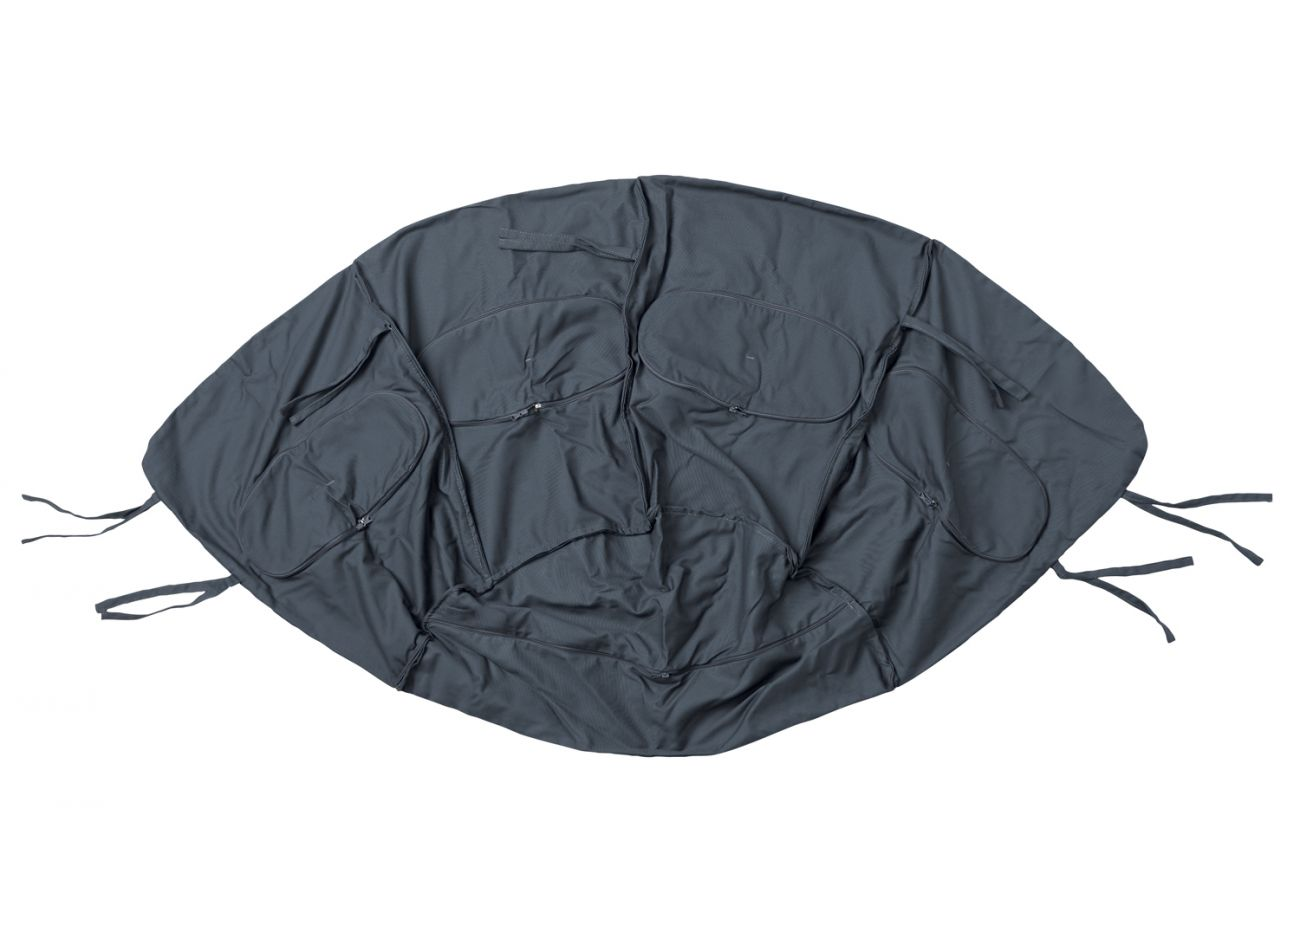 Hängestühl 1 Person Globo Weatherproof Anthracite